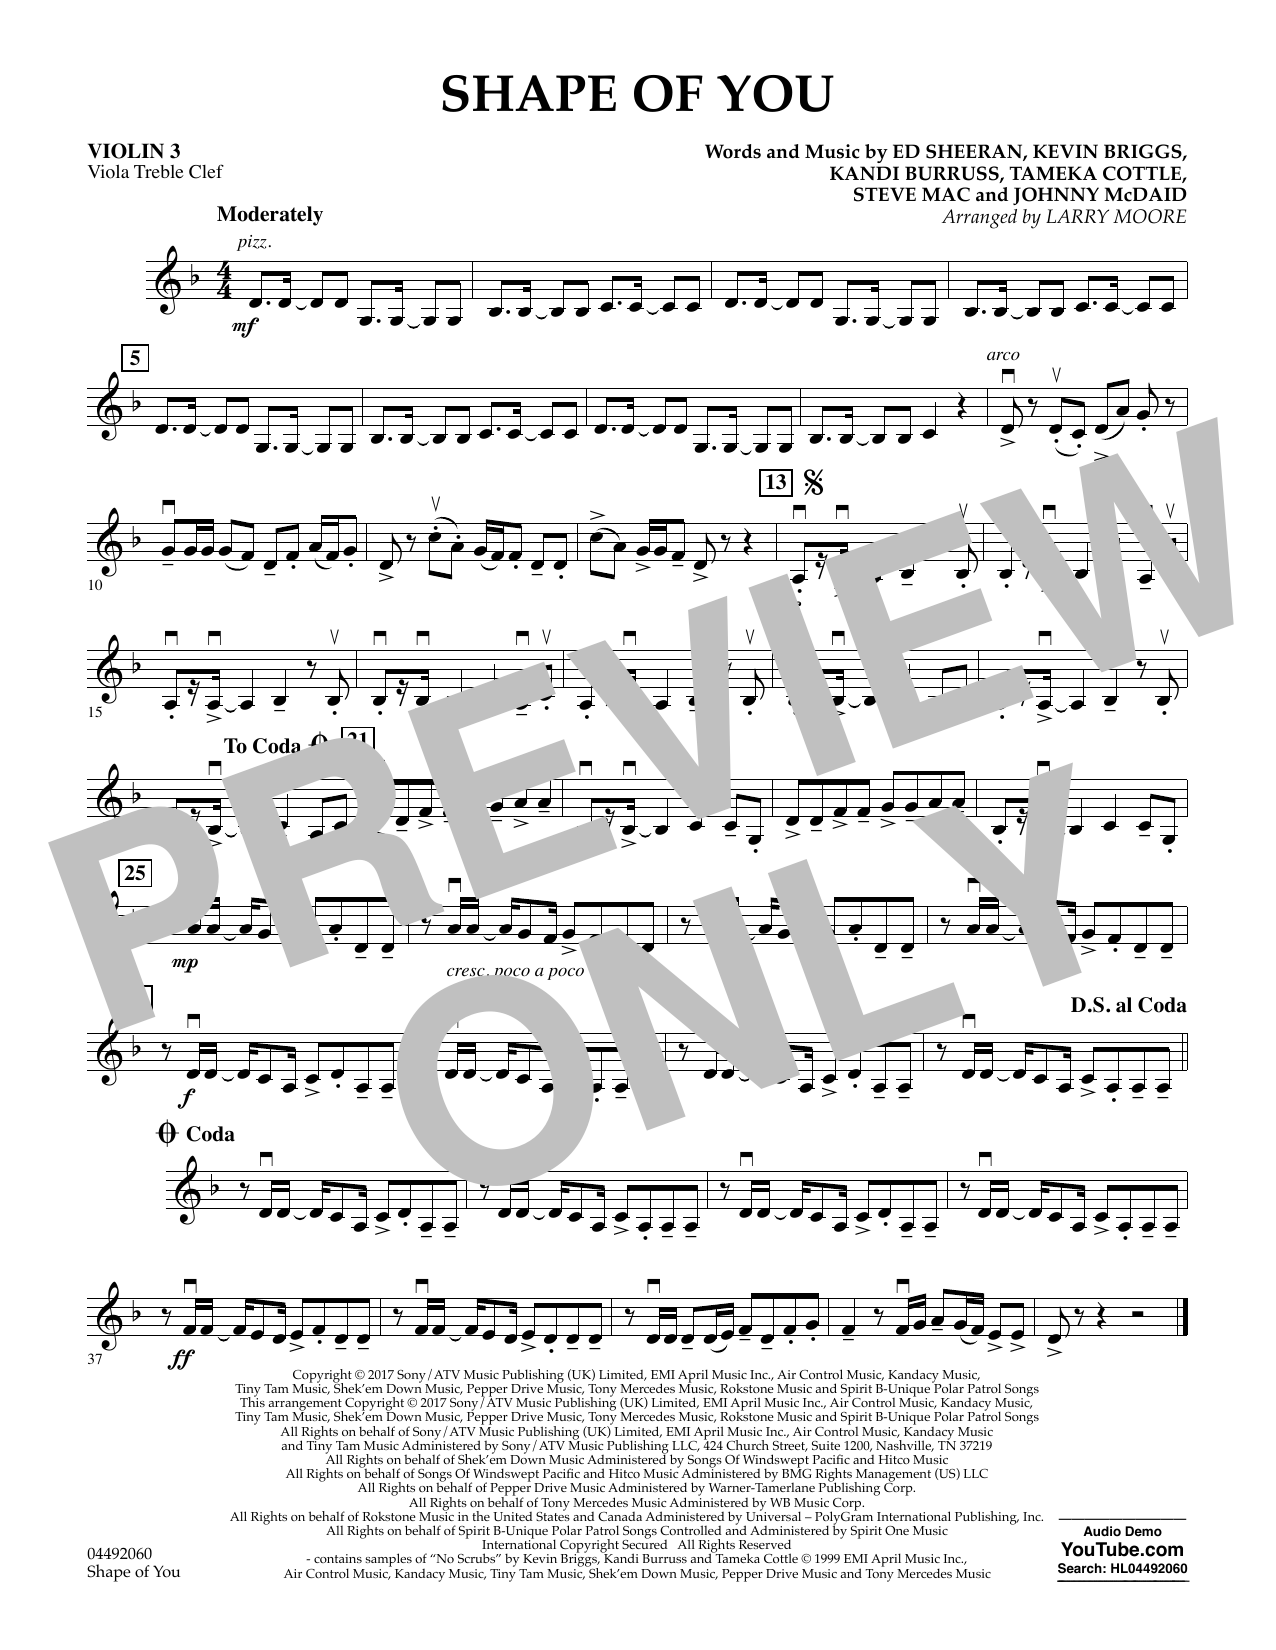 Larry Moore Shape of You - Violin 3 (Viola Treble Clef) sheet music notes and chords. Download Printable PDF.